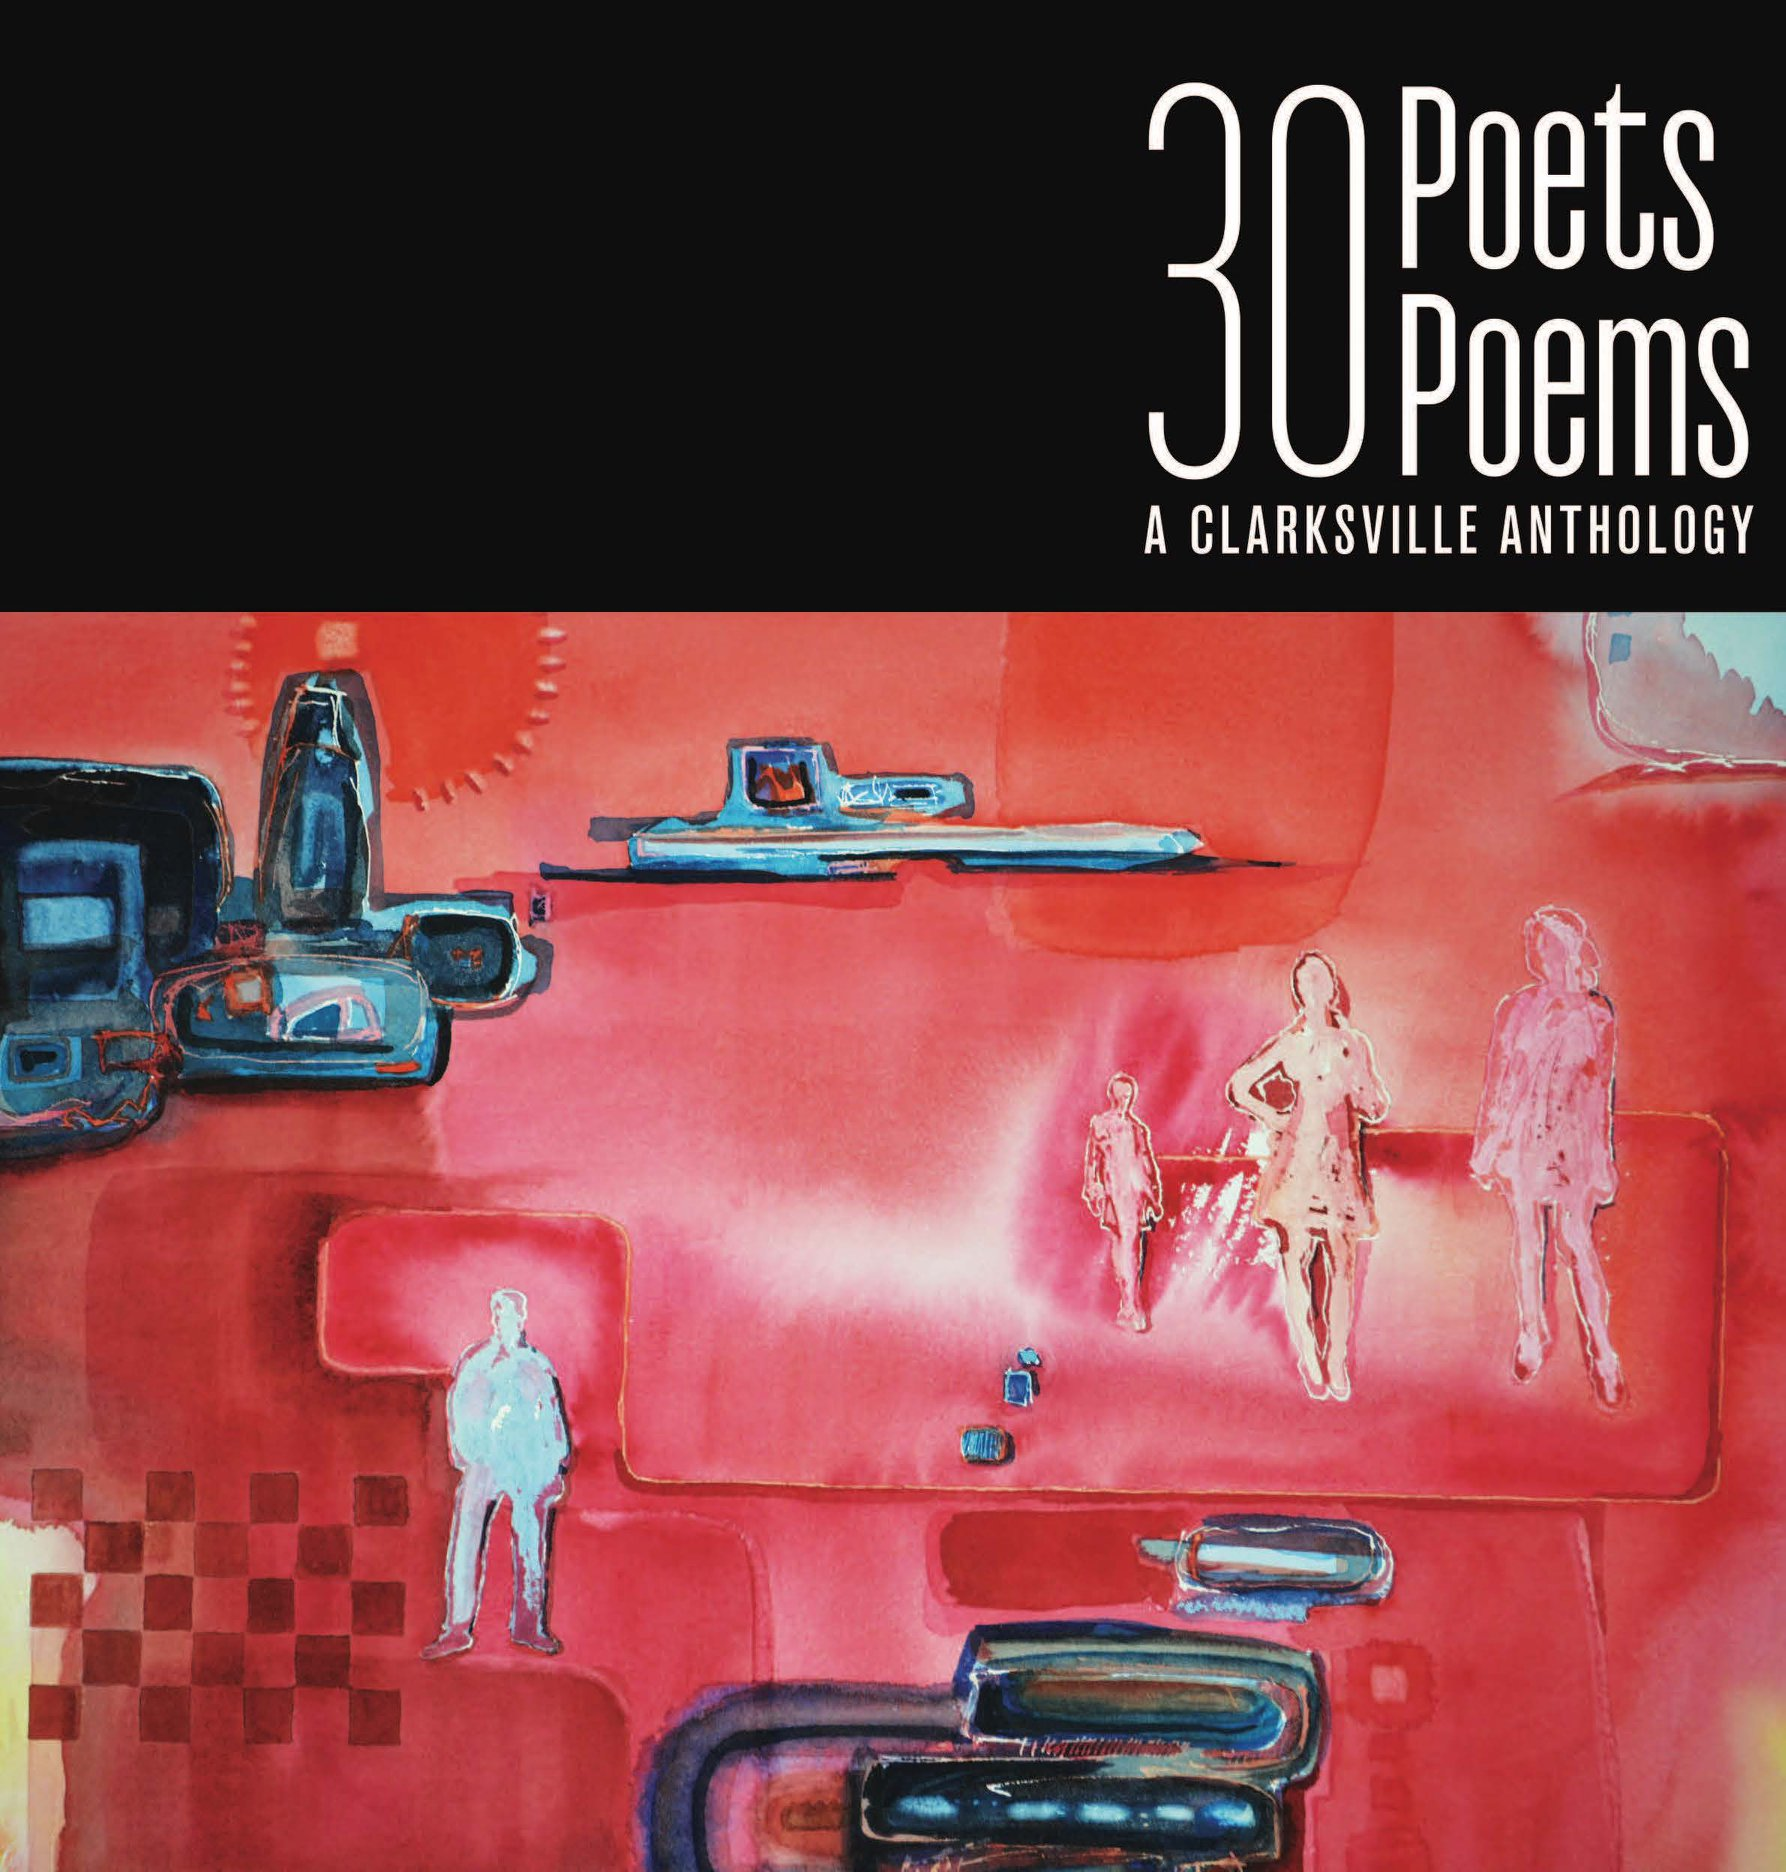 '30 Poets, 30 Poems' celebrates the people and places of Clarksville